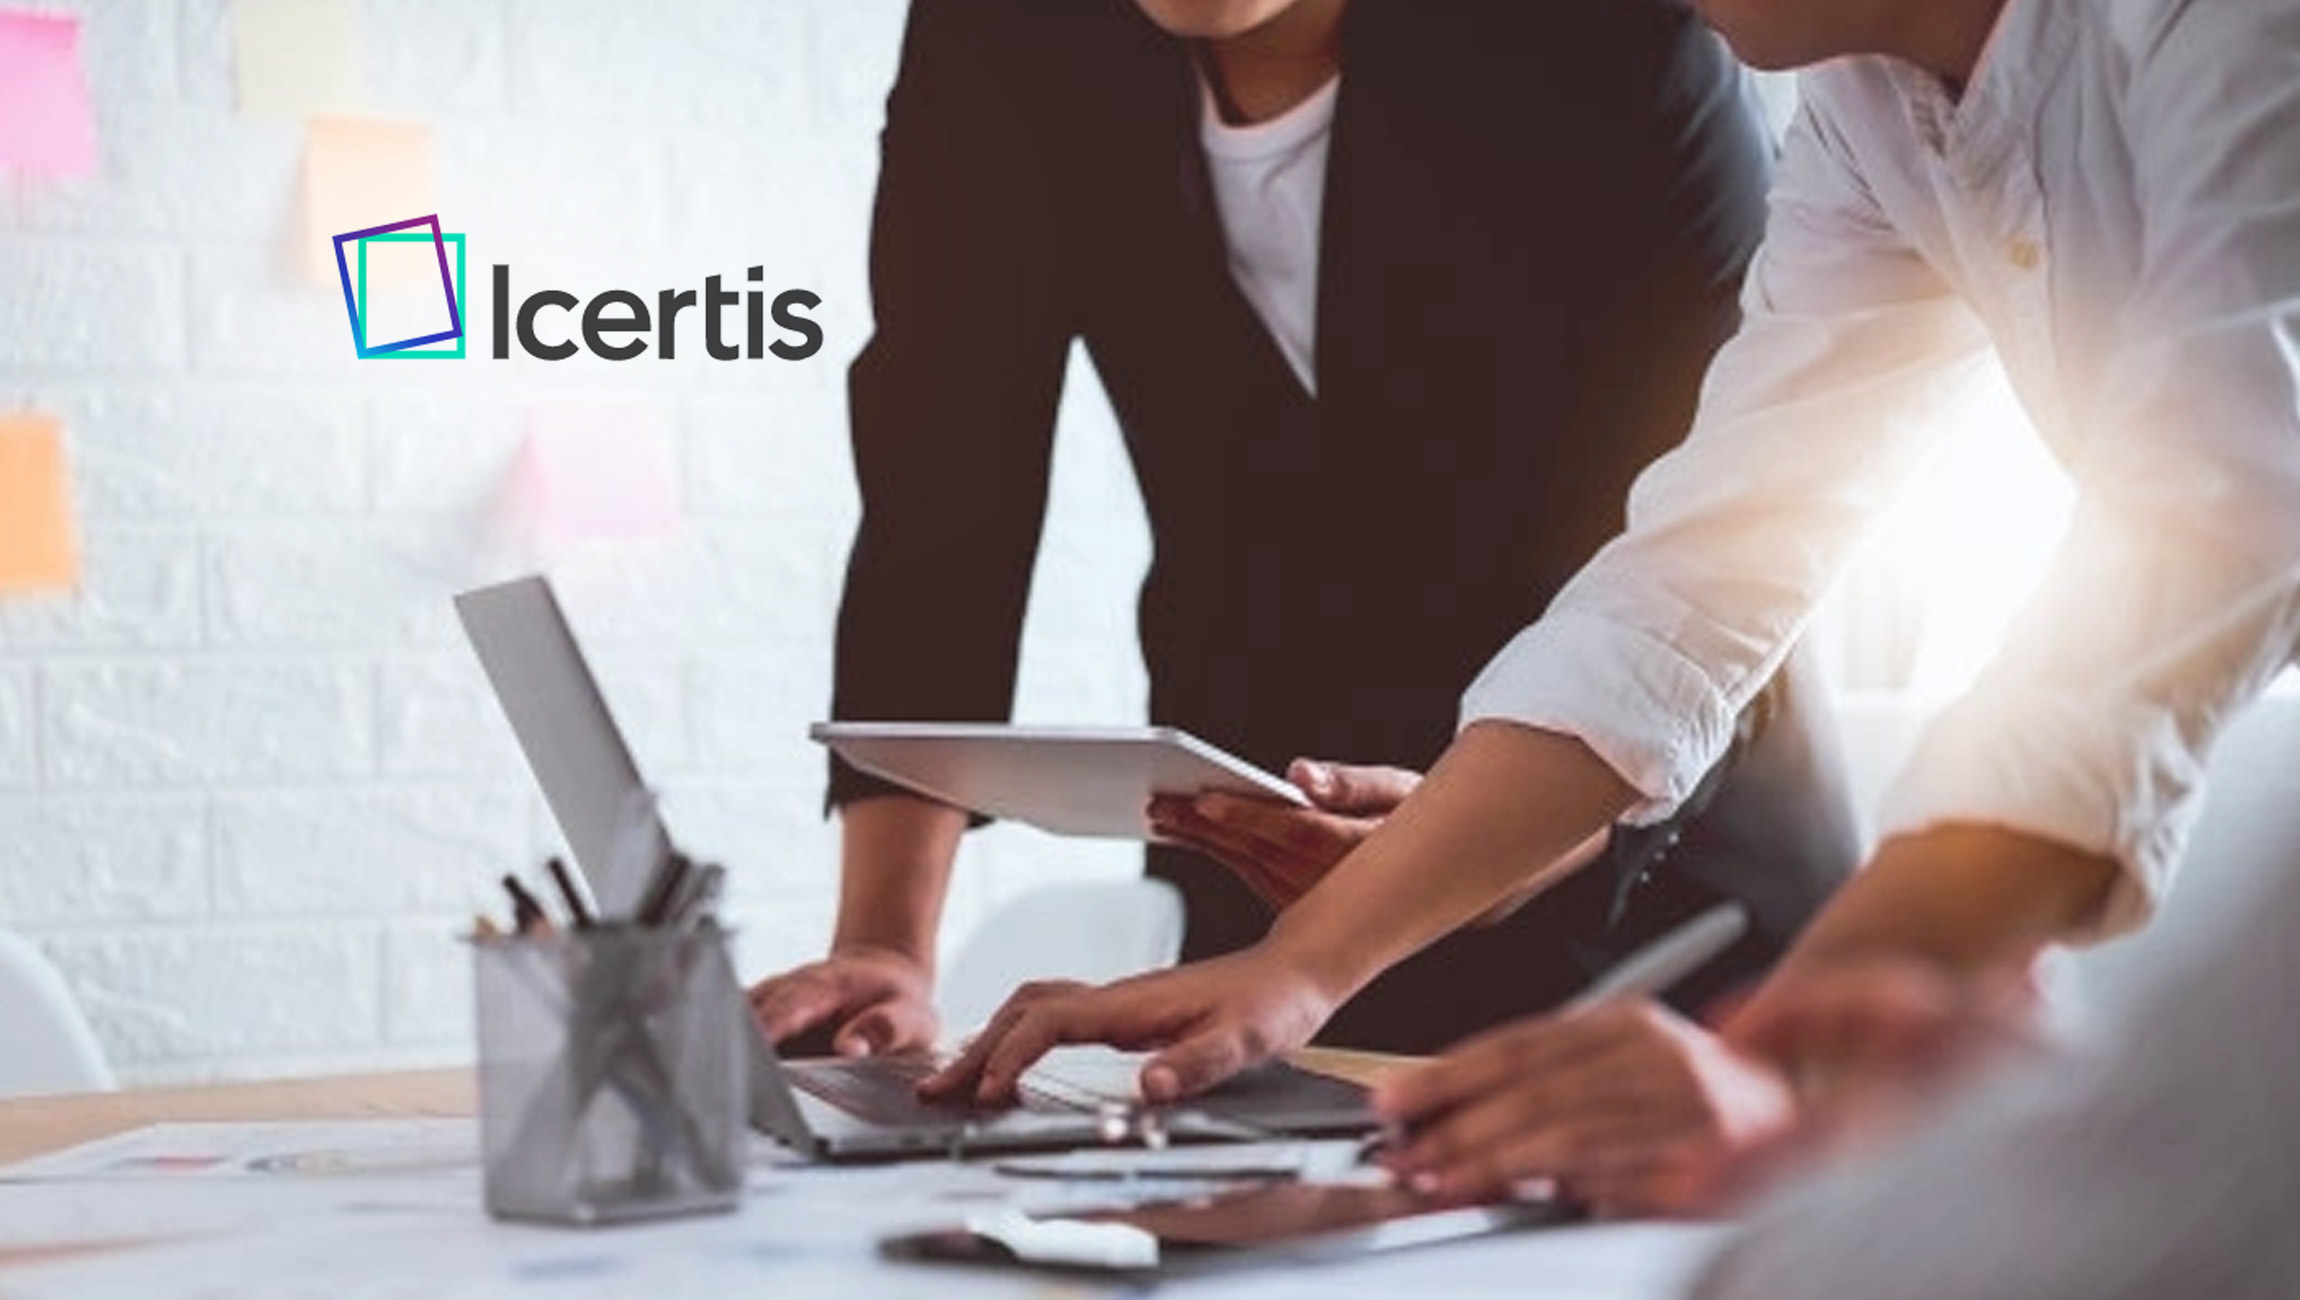 Icertis Celebrates Record Performance in 1H 2021 With 60% YoY Revenue Growth, Customer Expansions, and CLM Accolades